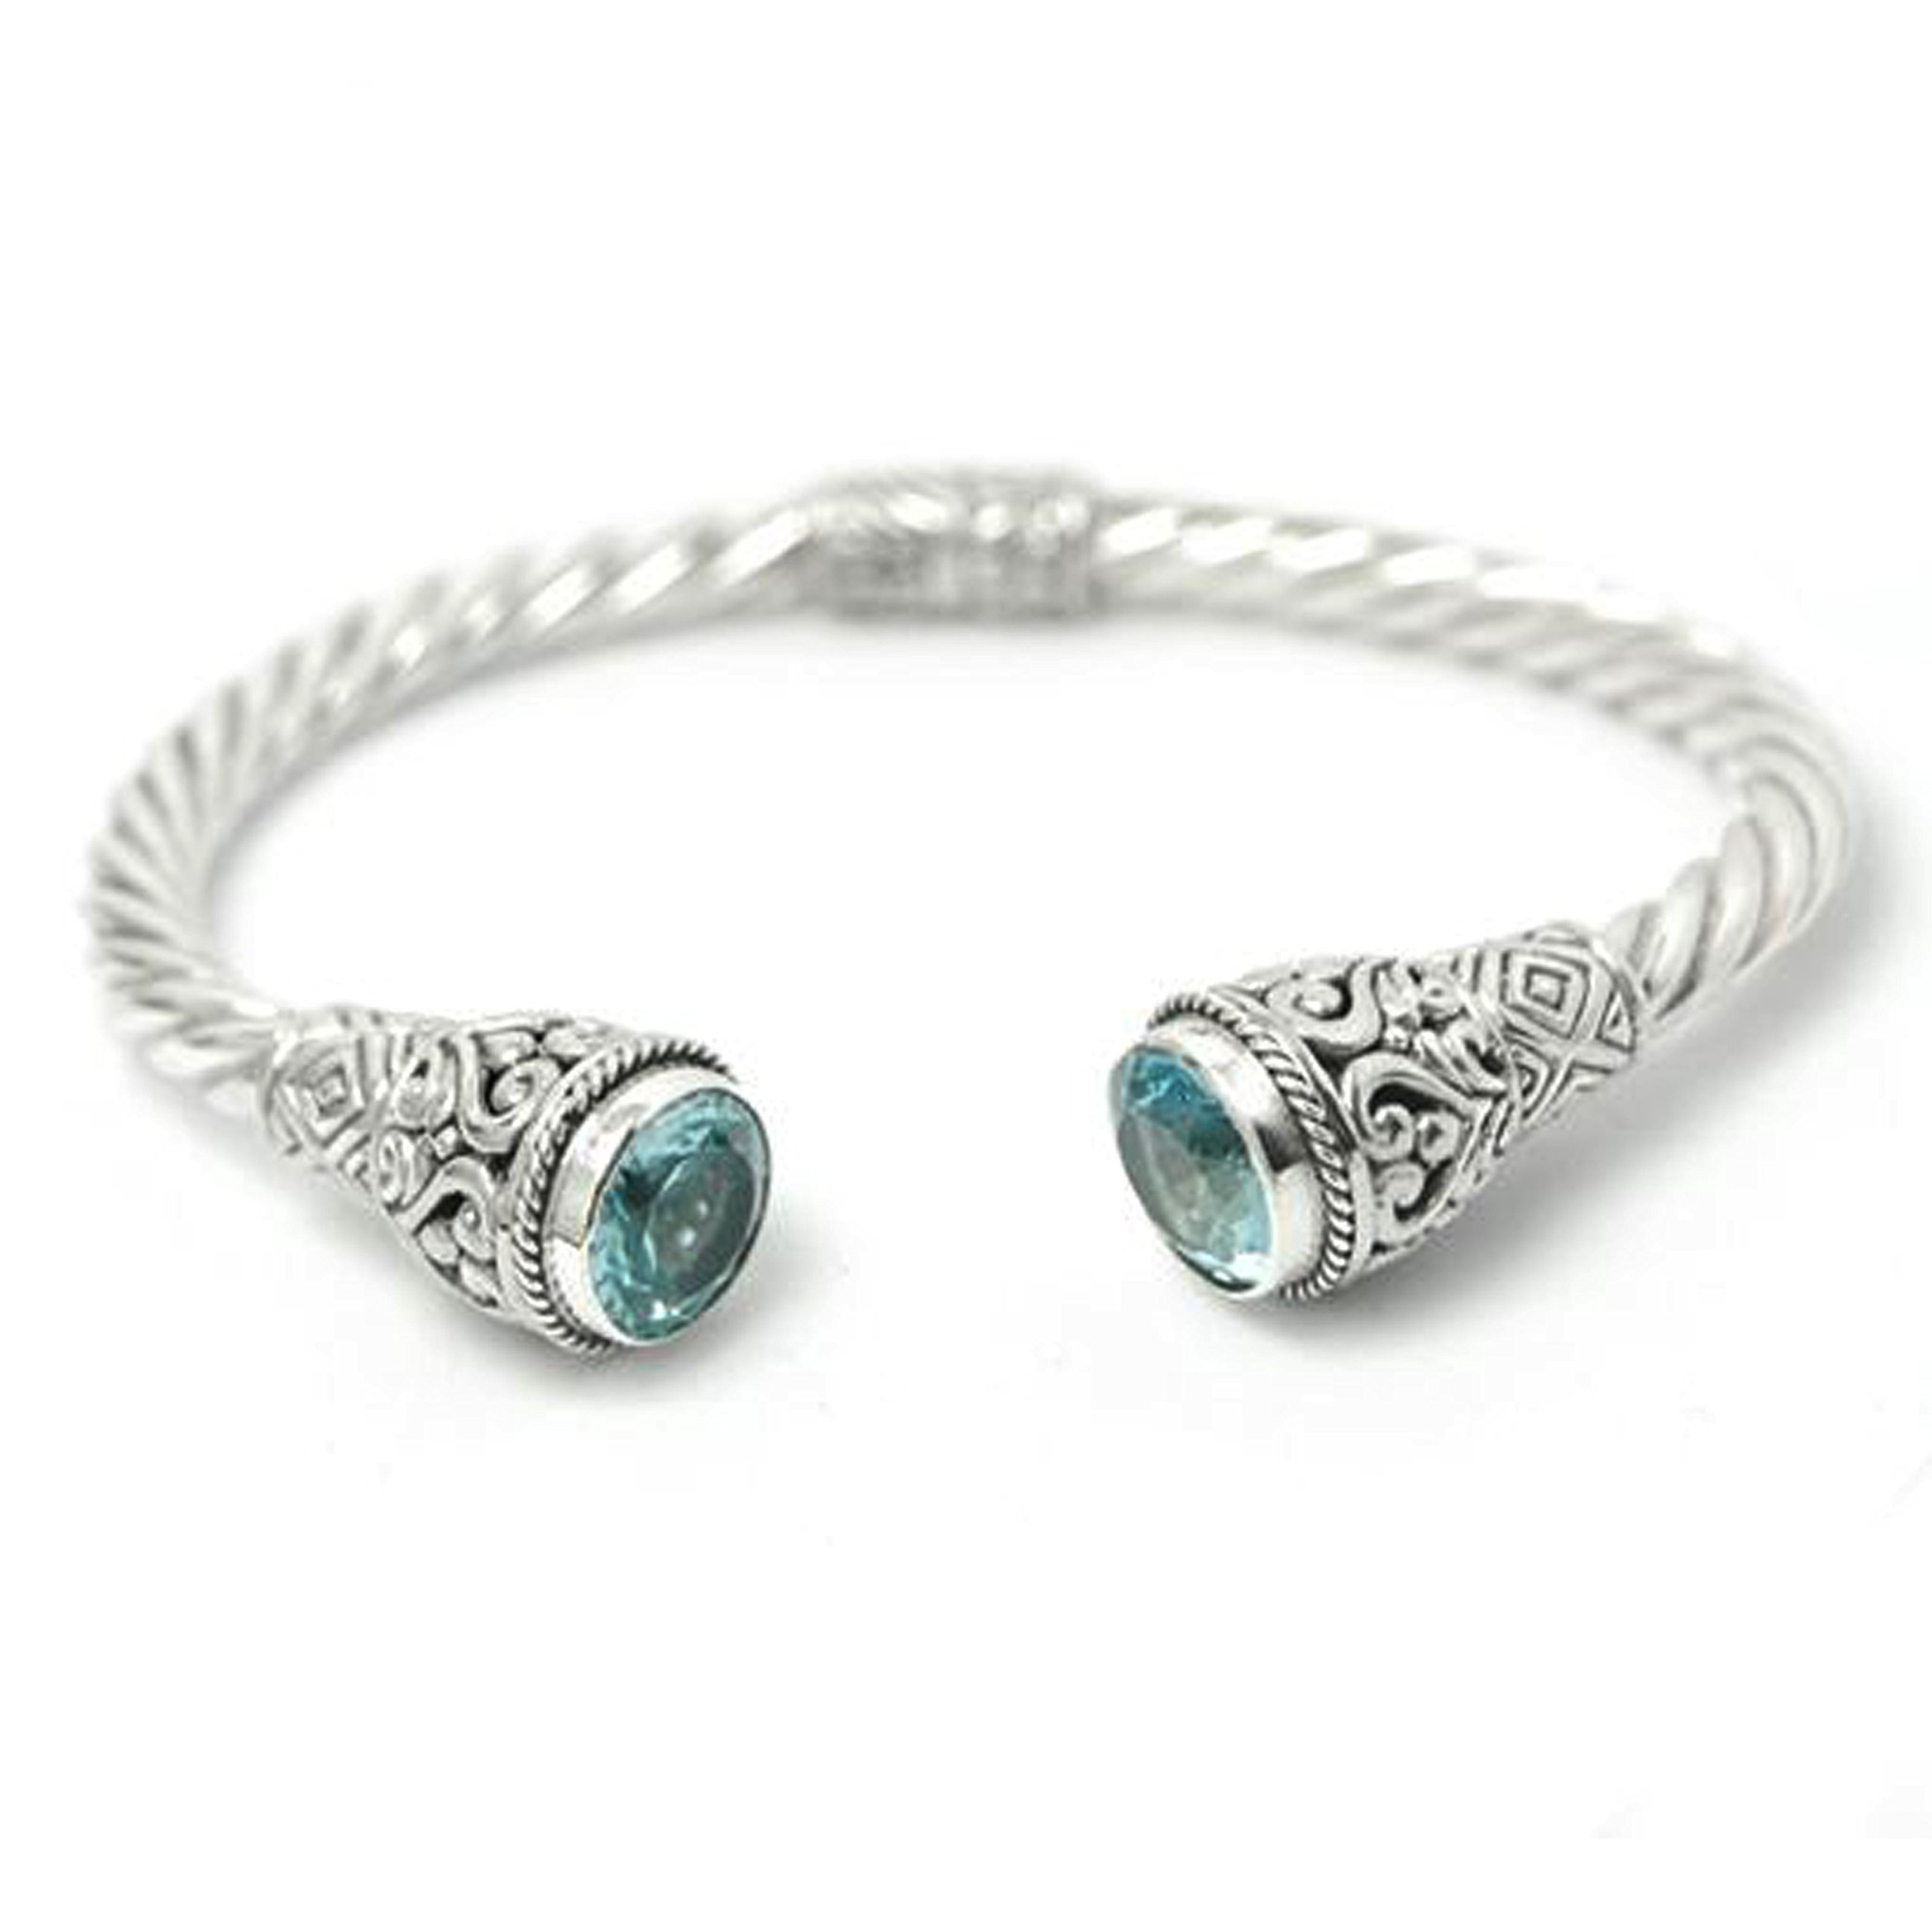 BluSilver 925 Sterling Silver Hinged Twisted Cable Cuff Bracelet Filigree Semiprecious Stone End Caps (Blue Topaz)